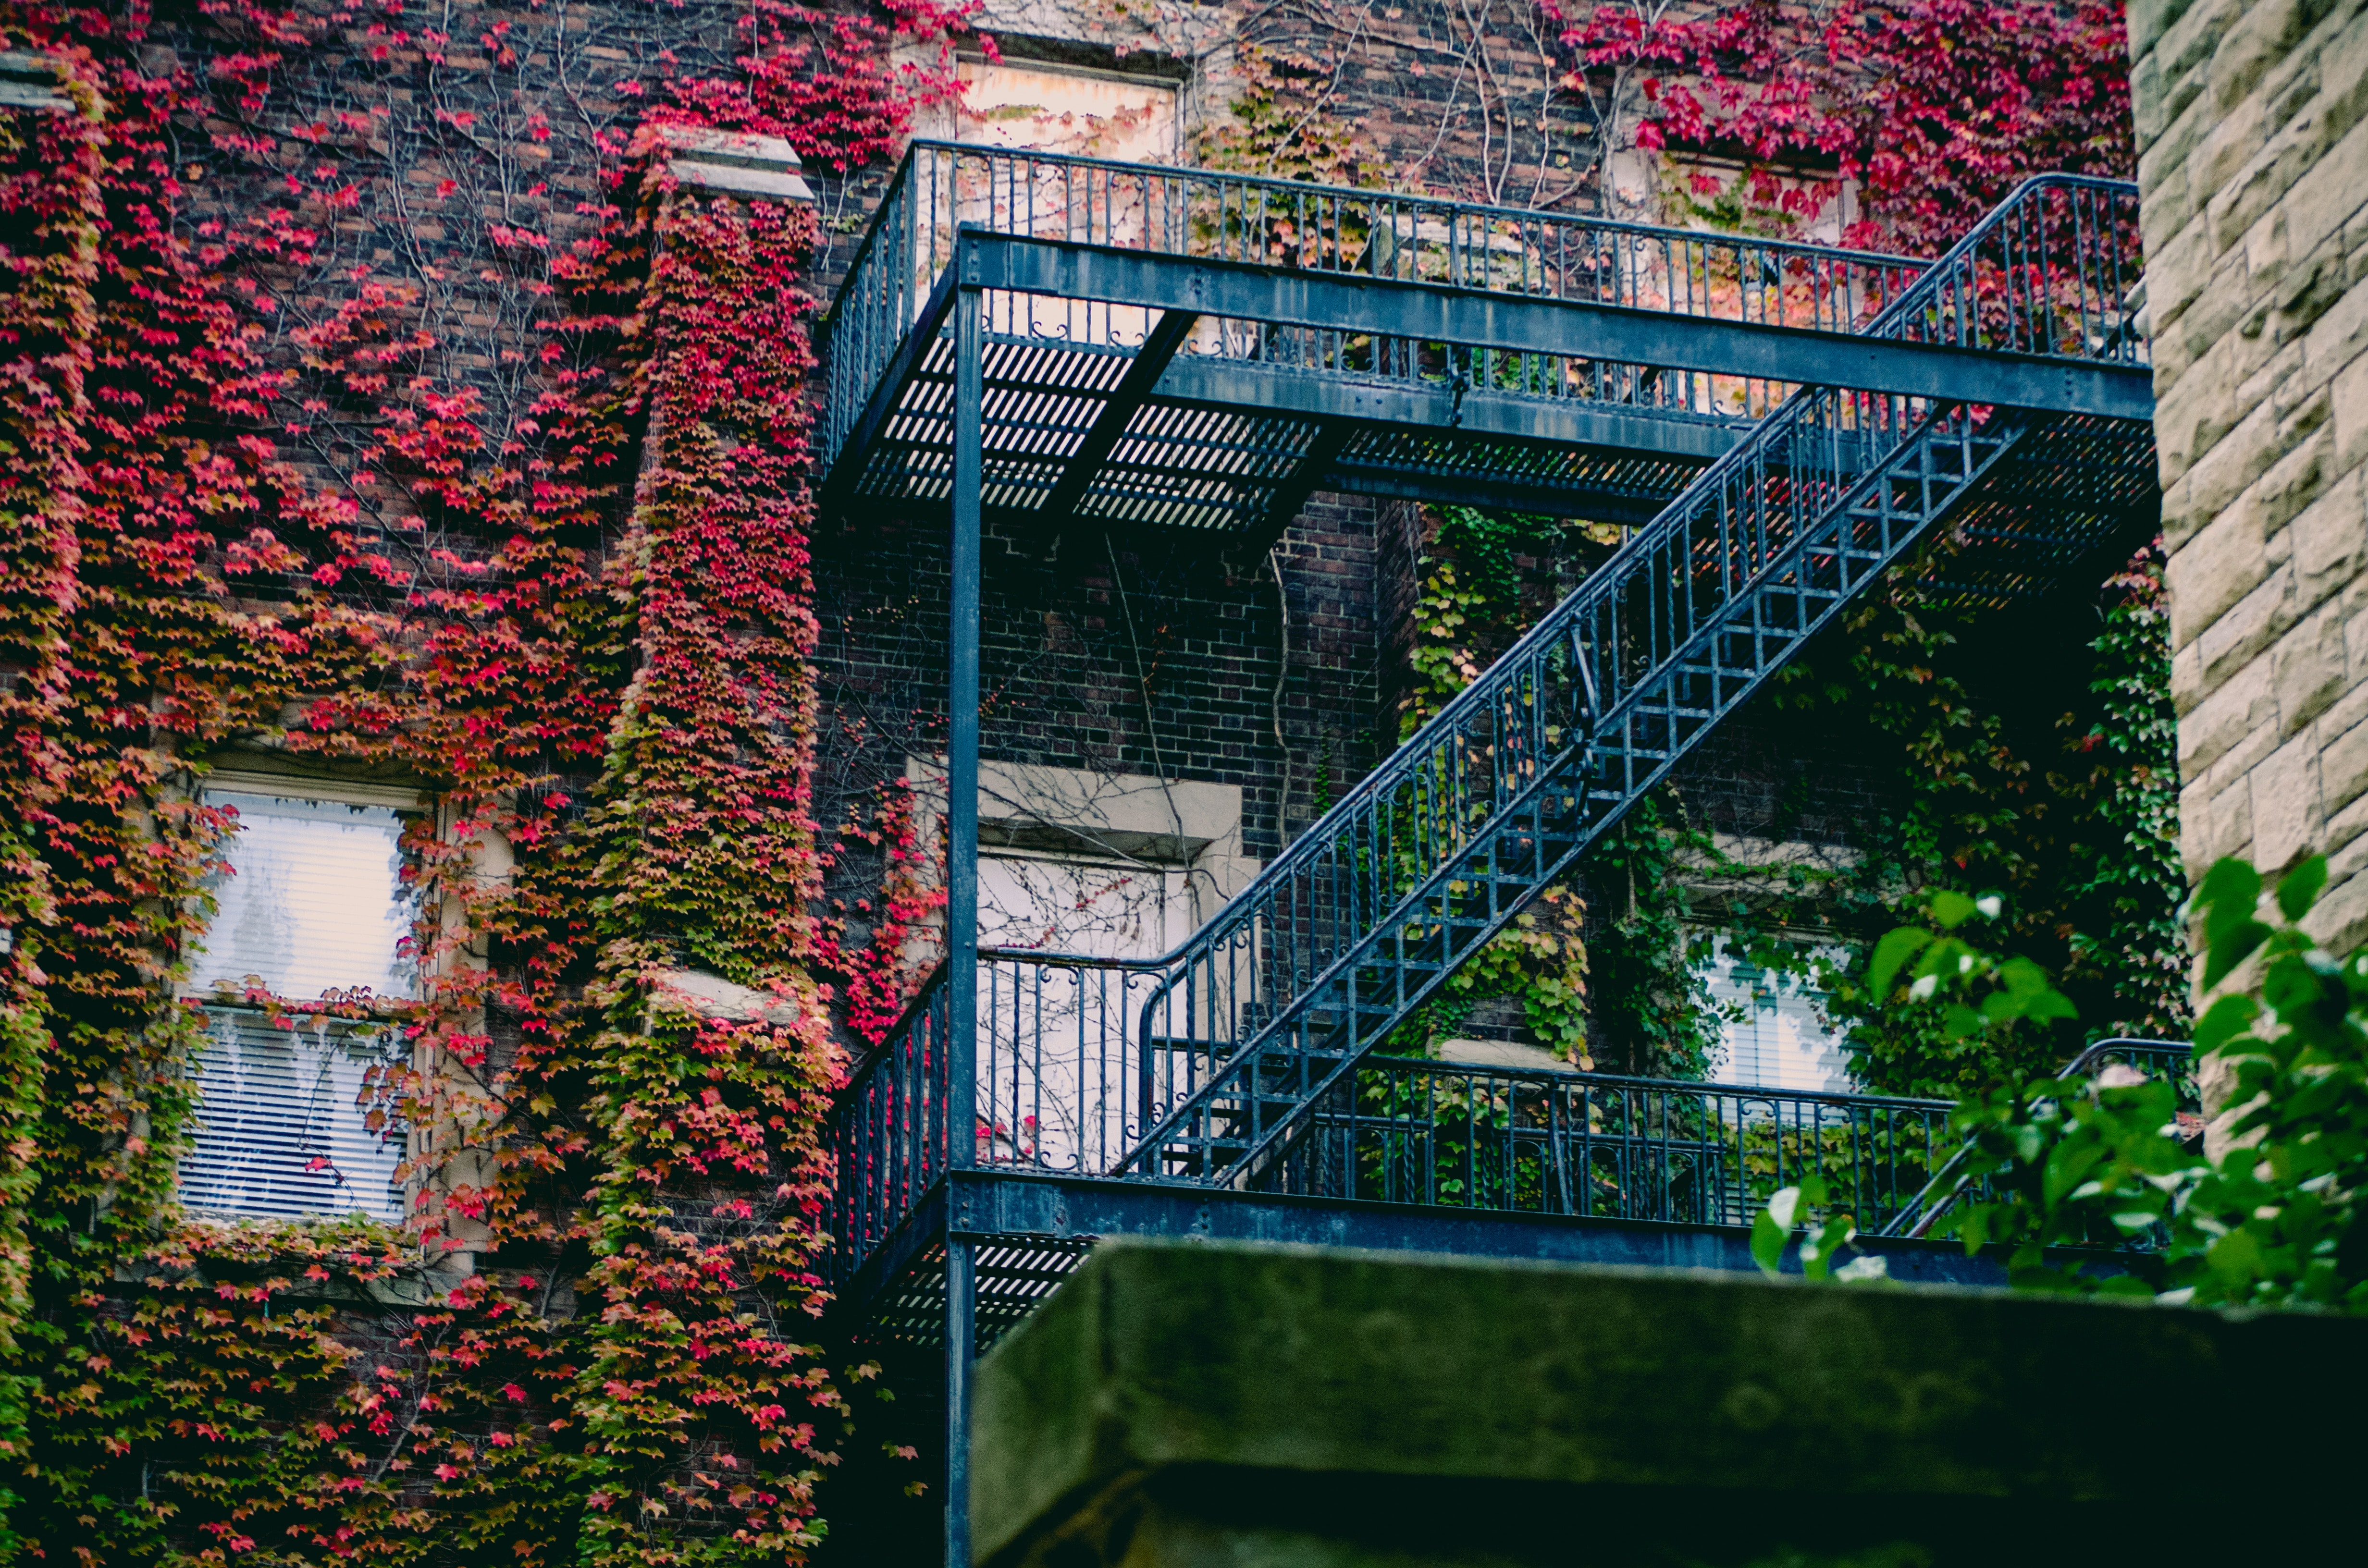 Blue Metal Ladder, Apartment, Overgrown, Ivy, Light, HQ Photo